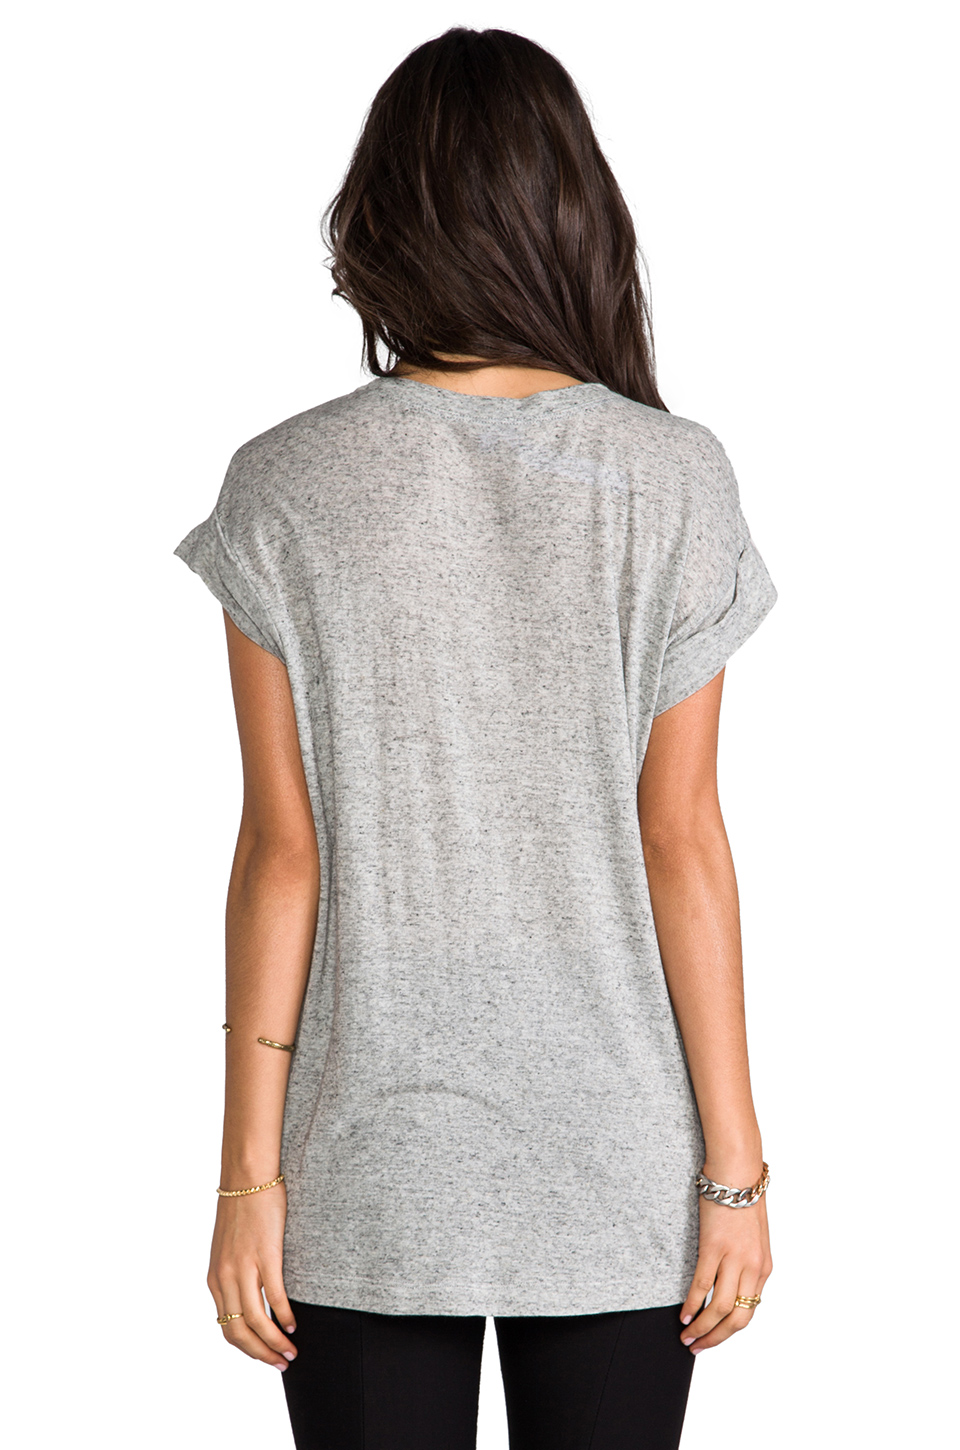 Wilt Roll Cuff Short Sleeve Tee in Grey Heather Solid from REVOLVEclothing.com